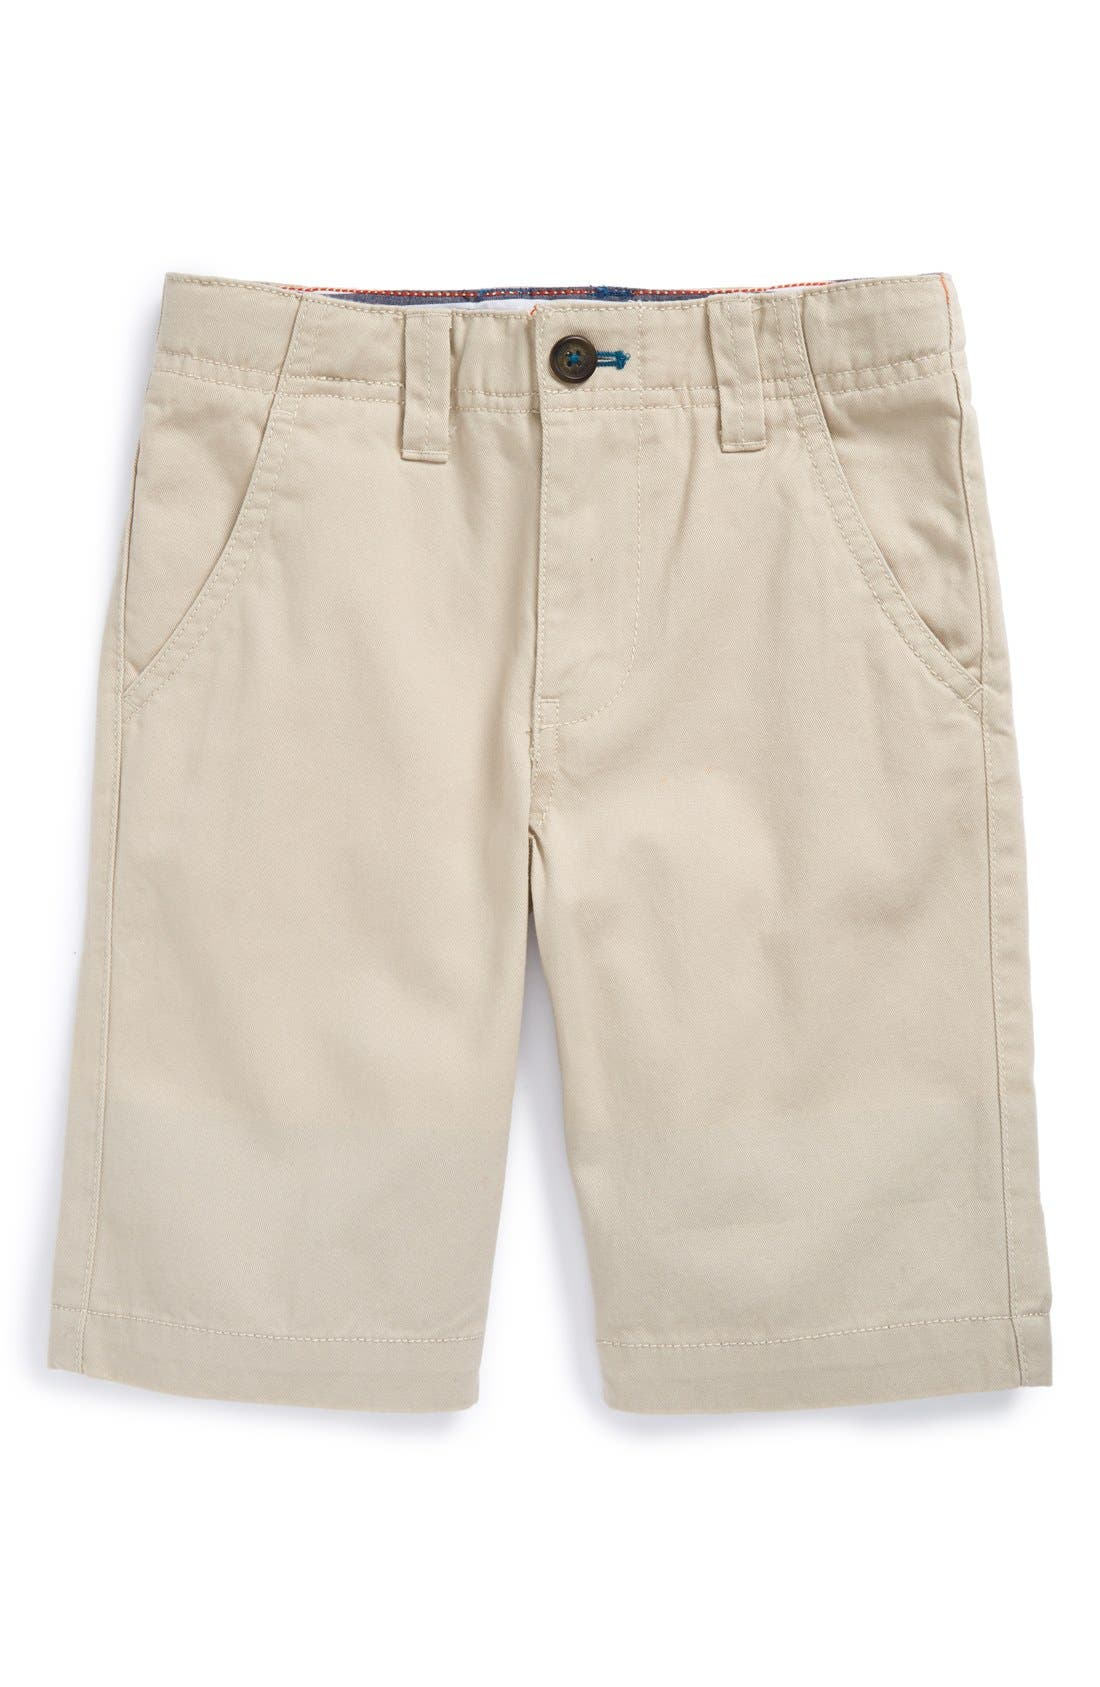 Alternate Image 1 Selected - Mini Boden Cotton Chino Shorts (Toddler Boys, Little Boys & Big Boys)